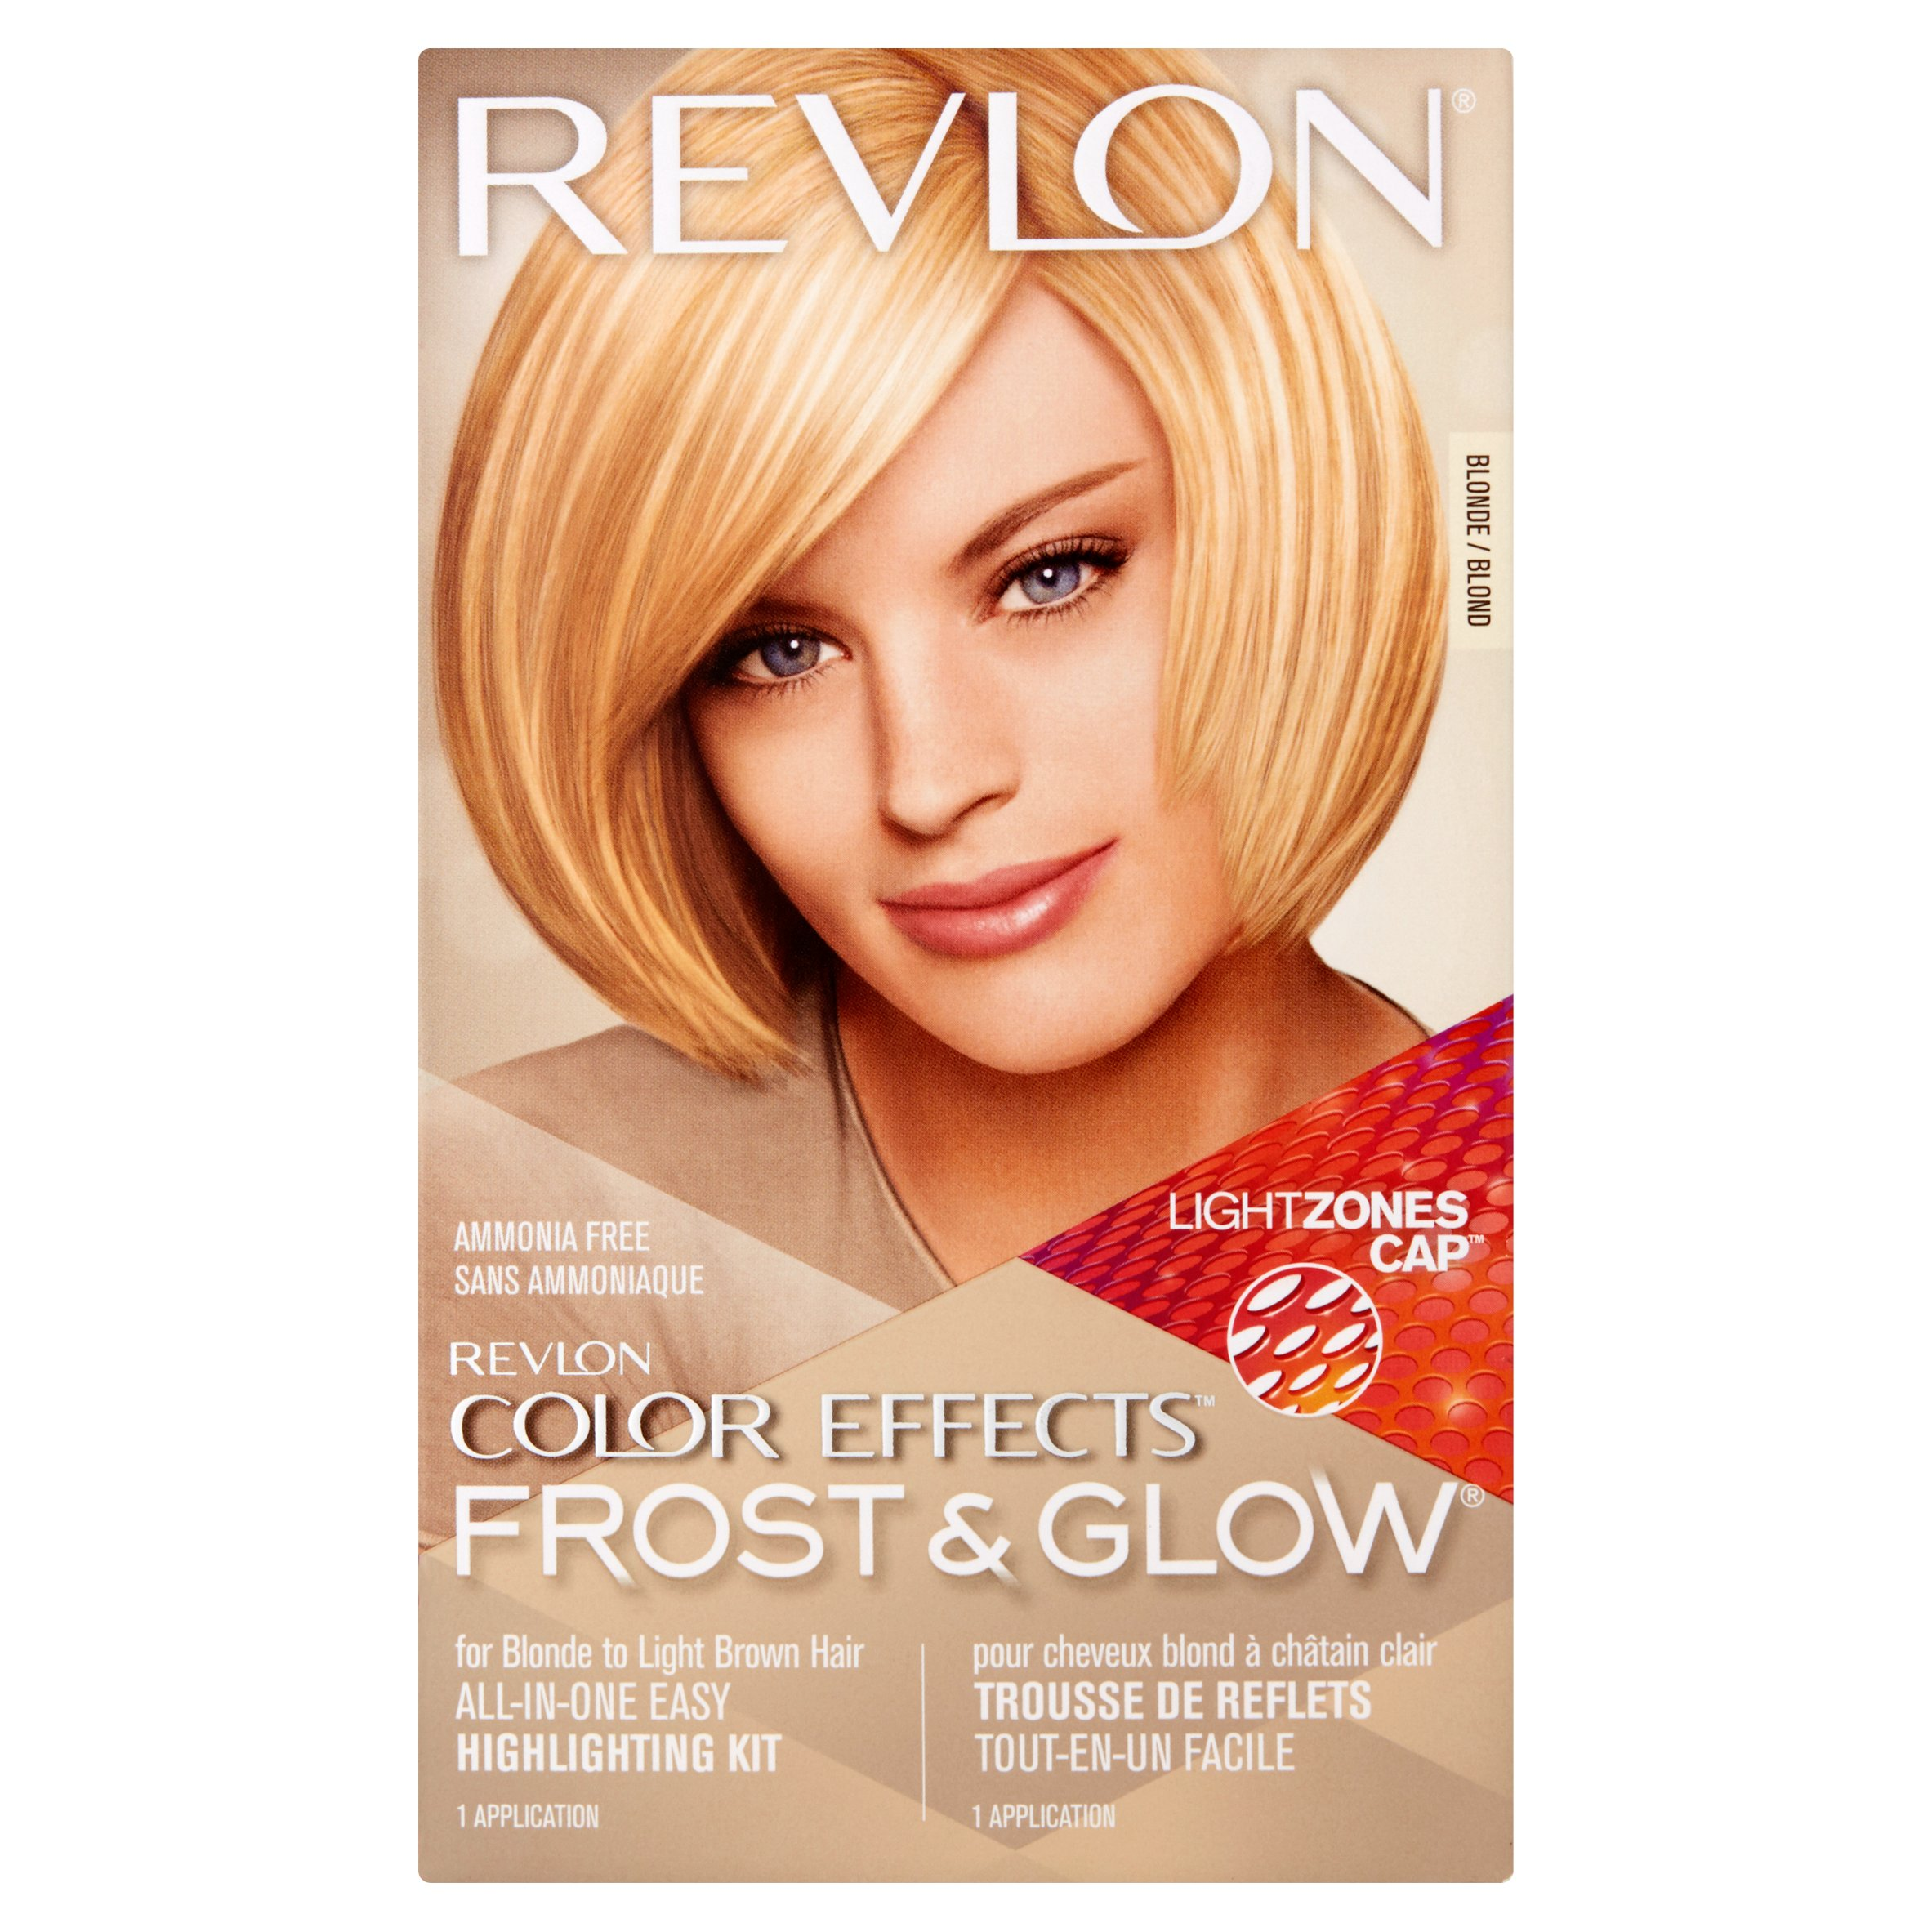 Revlon color effects frost & glow hair highlighting kit, blonde